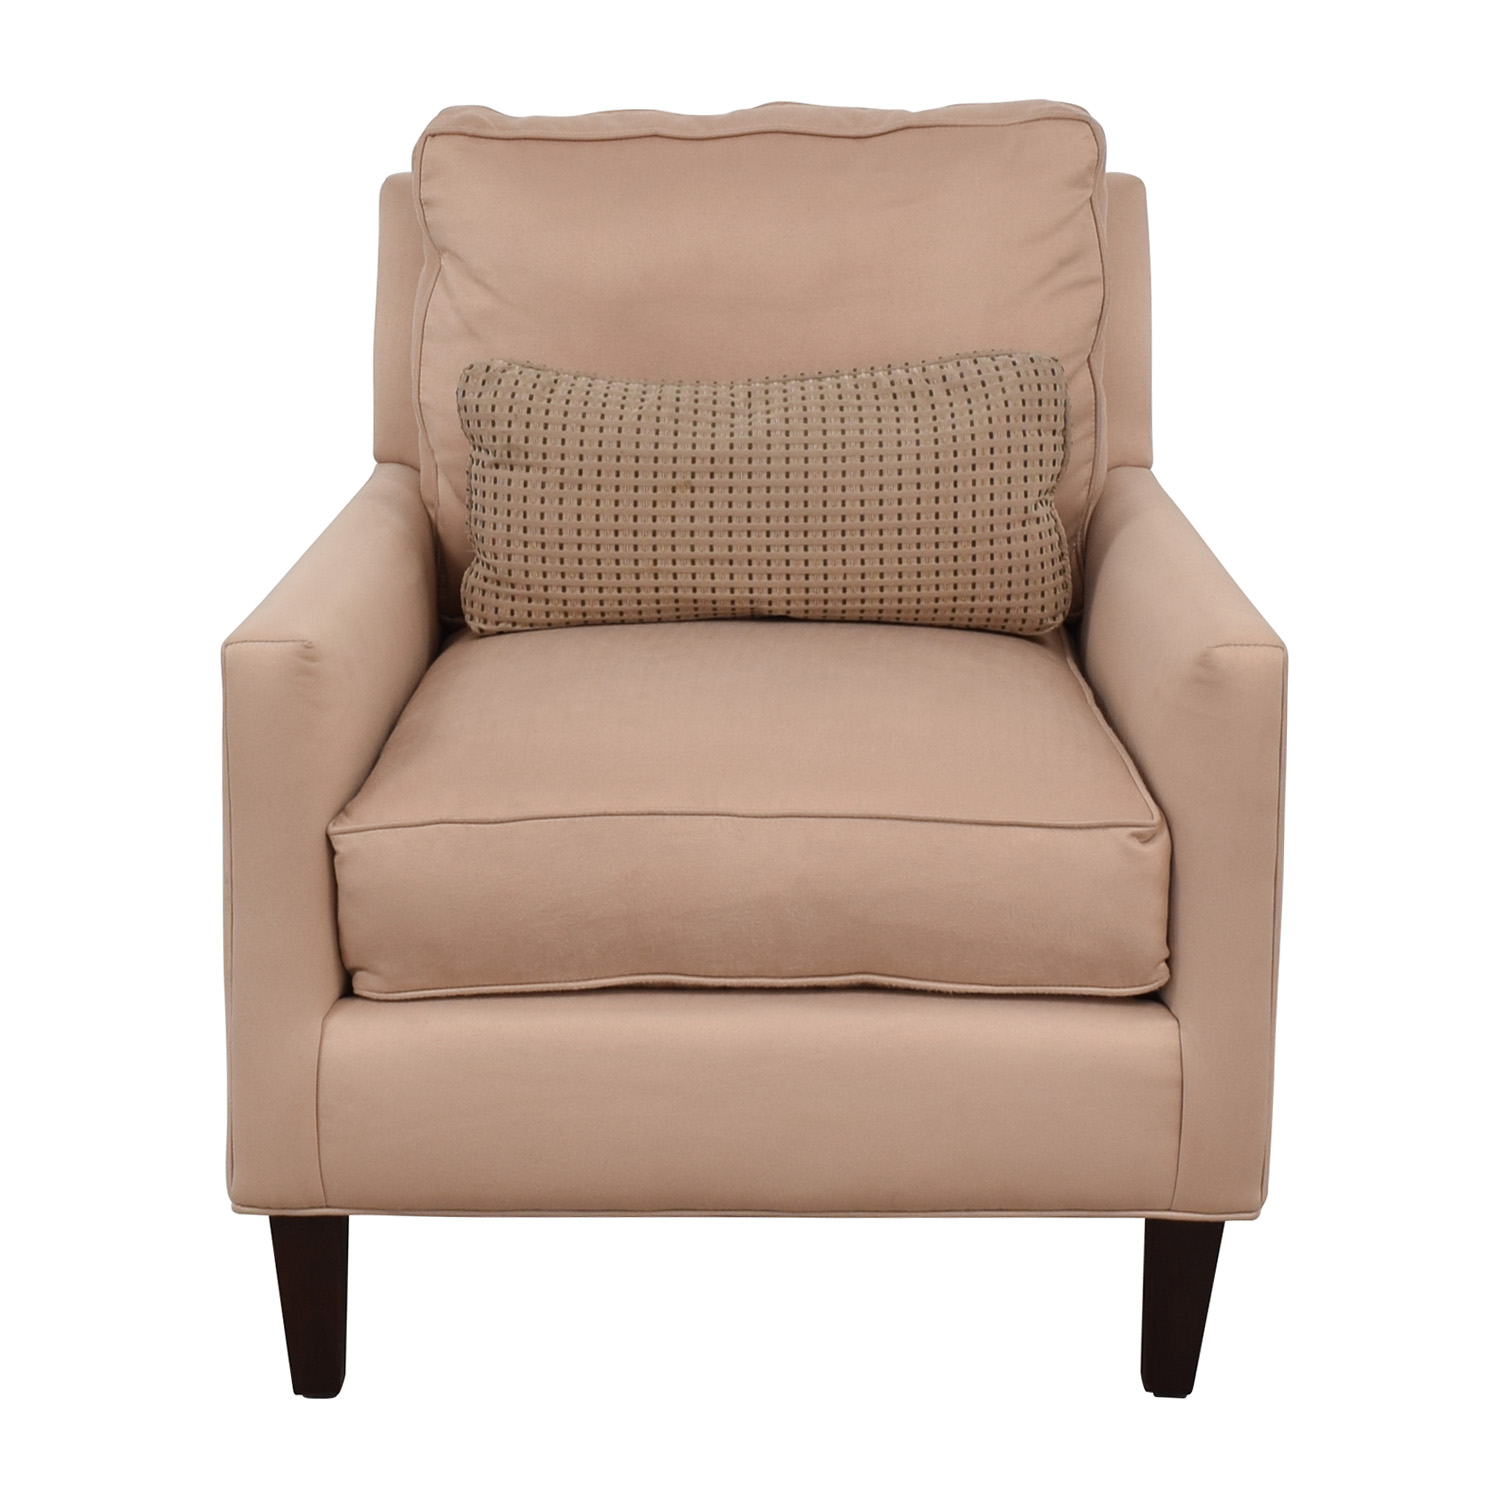 Thomasville Thomasville Highlife Accent Chair